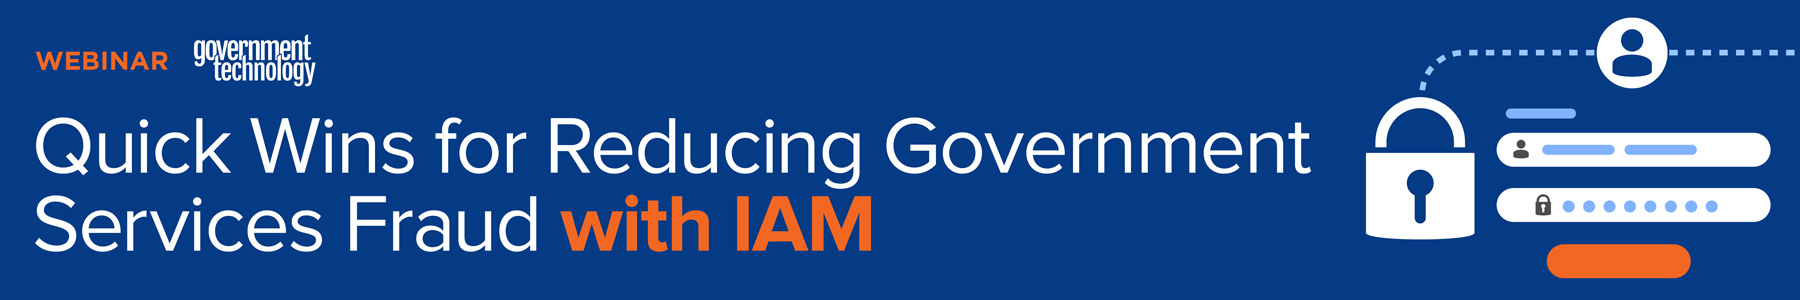 Quick Wins for Reducing Government Services Fraud with IAM